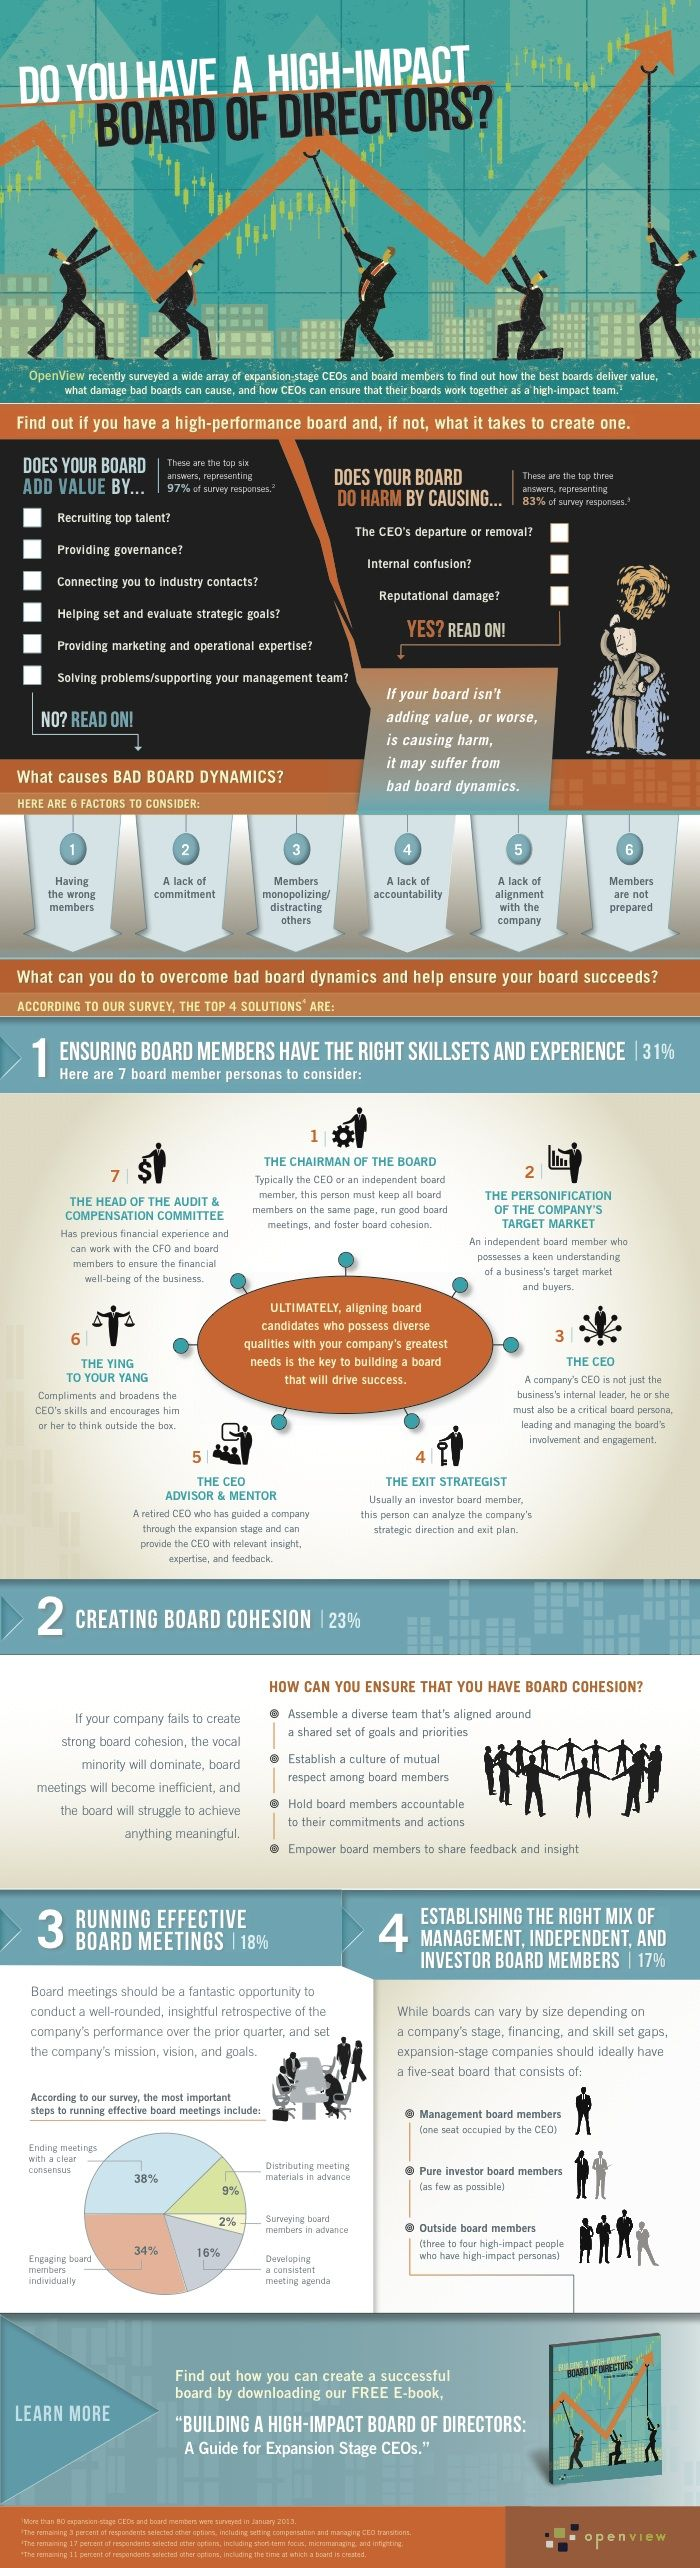 Board of Directors Infographic: Do You Have a High-Impact Board of Directors? | OpenView Labs